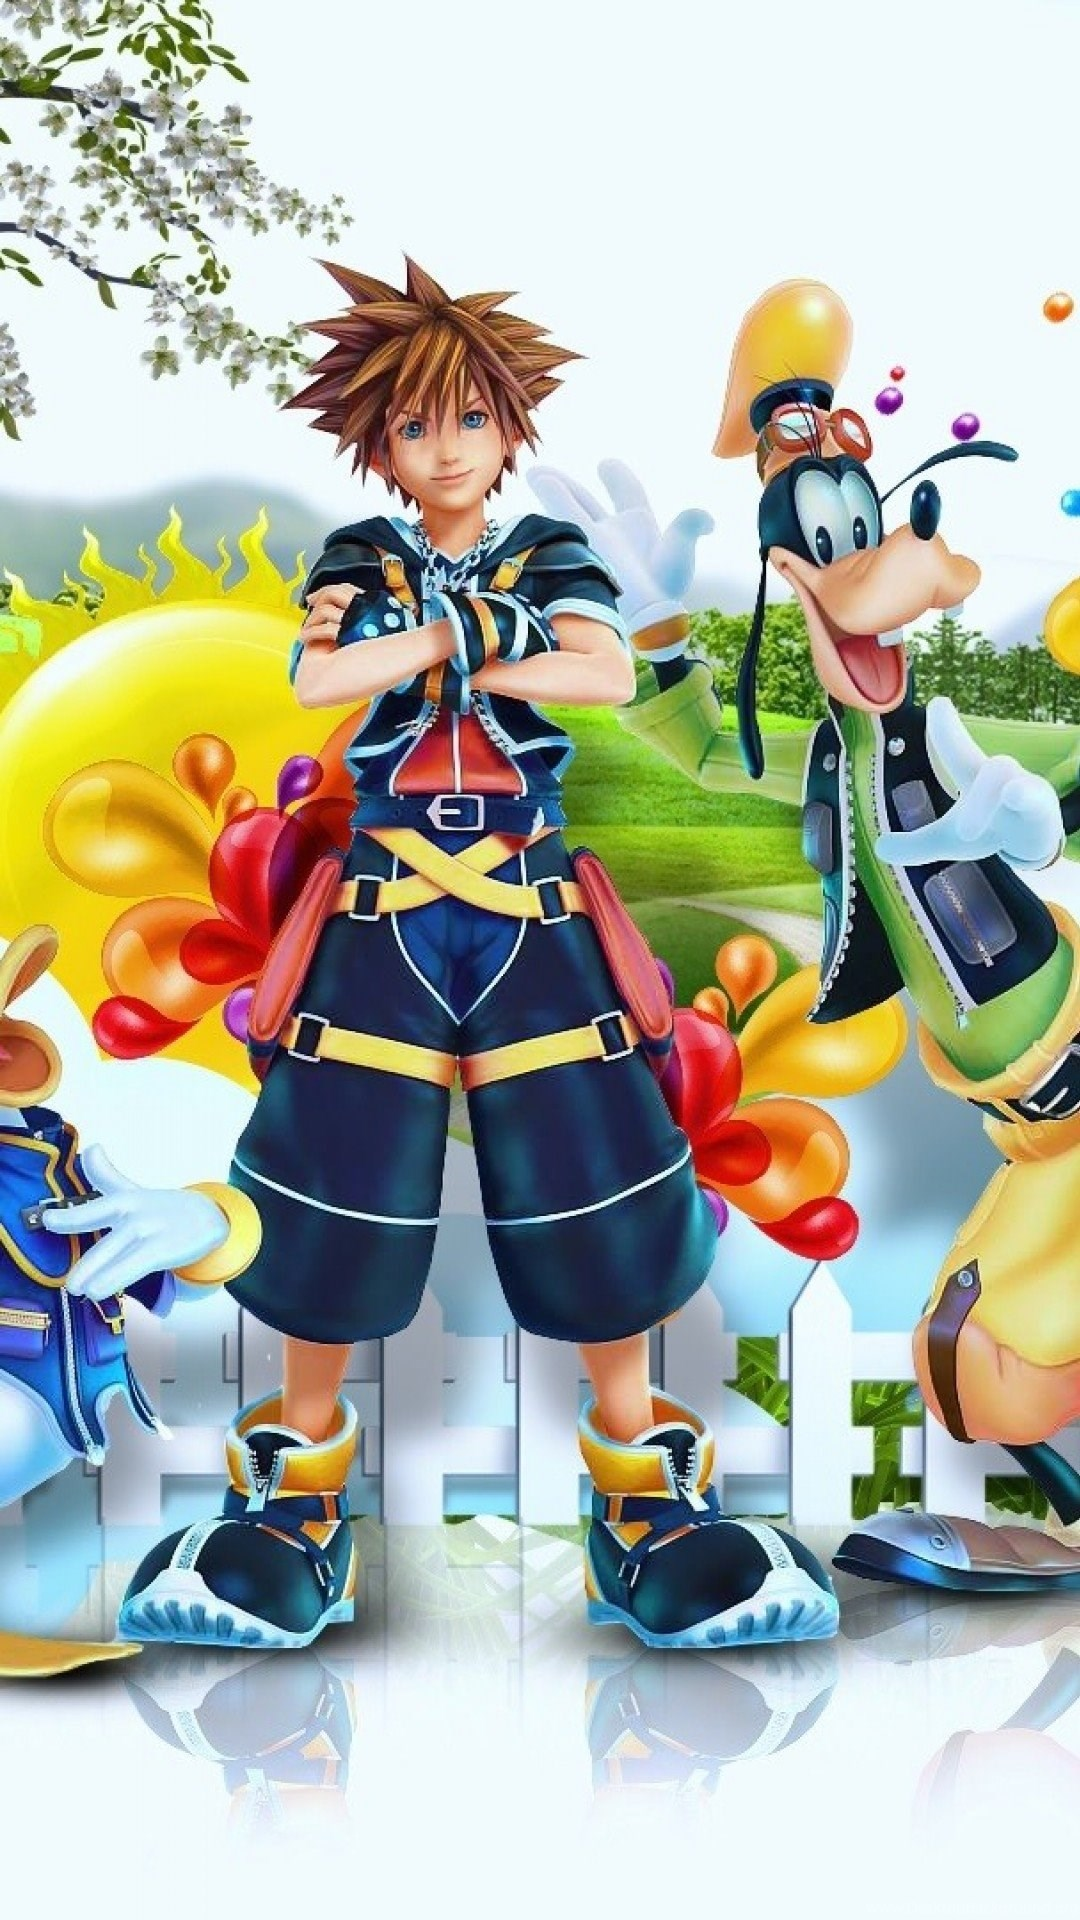 Kingdom Hearts Iphone Wallpapers For Iphone 6 Plus Desktop Background